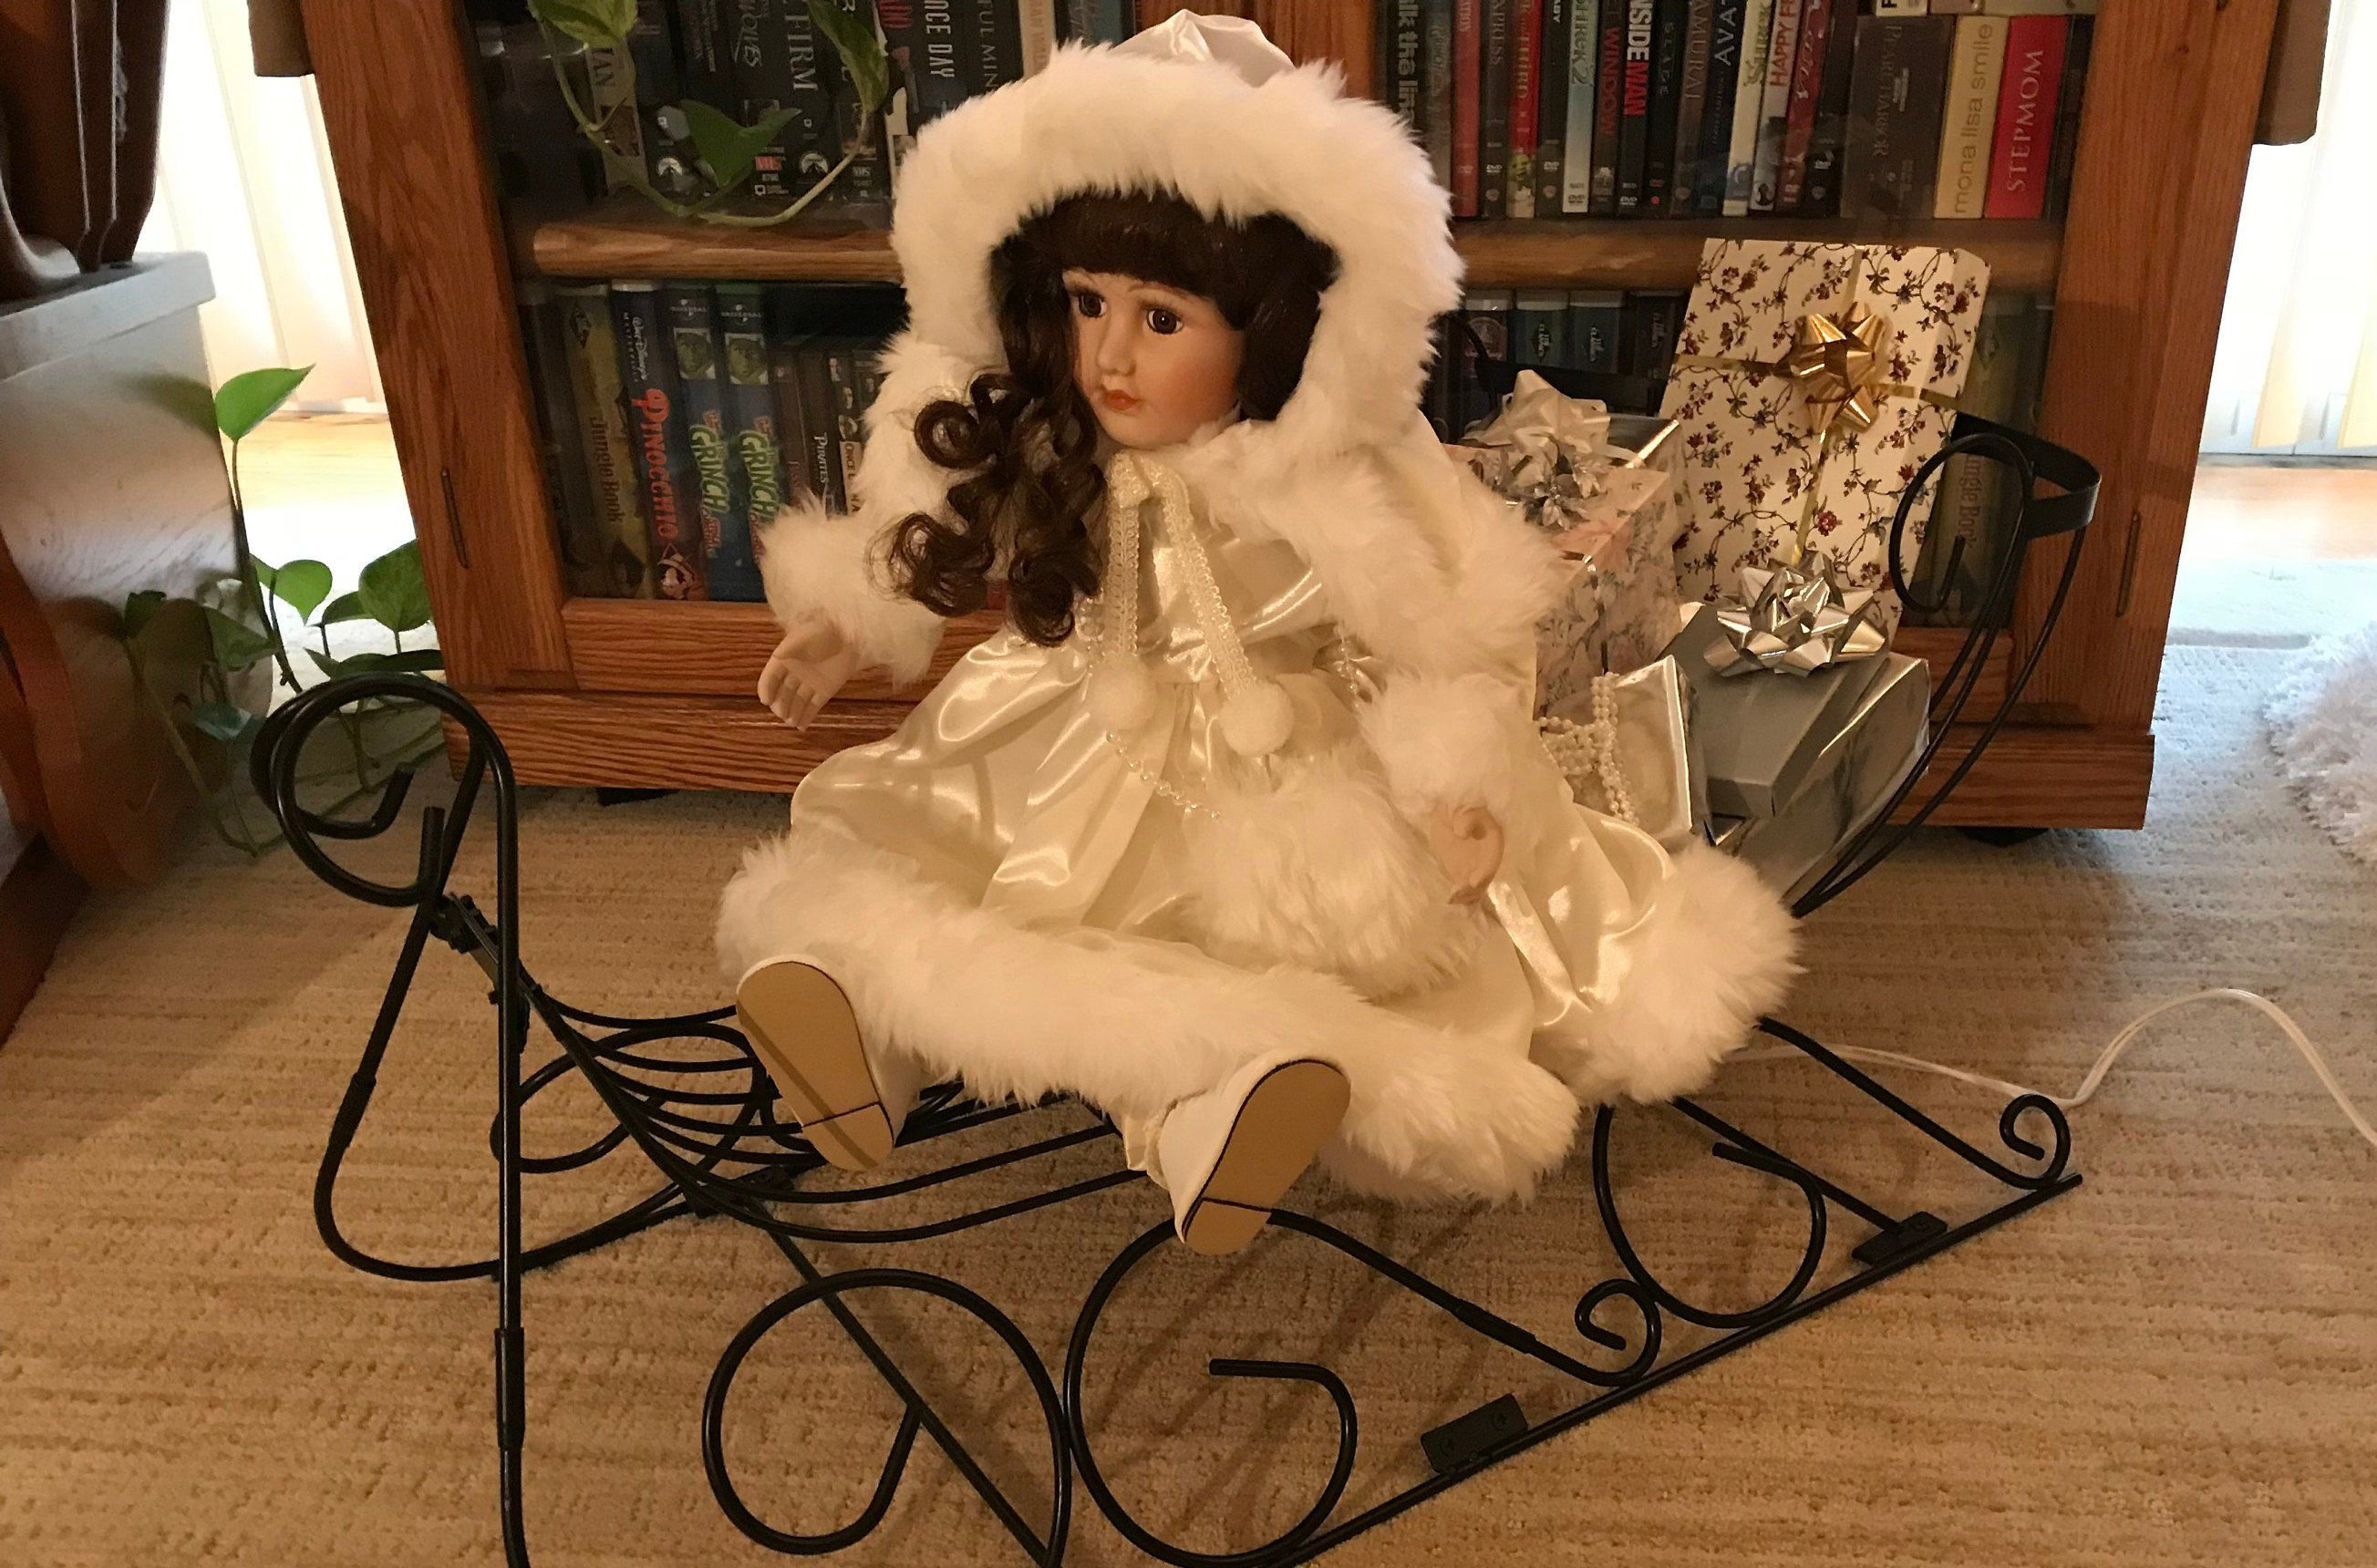 NEW Vintage Animated Victorian Doll-Excellent Condition-Metal Sleigh-Metal Stand for Upright Postition-Collectibles #victoriandolls